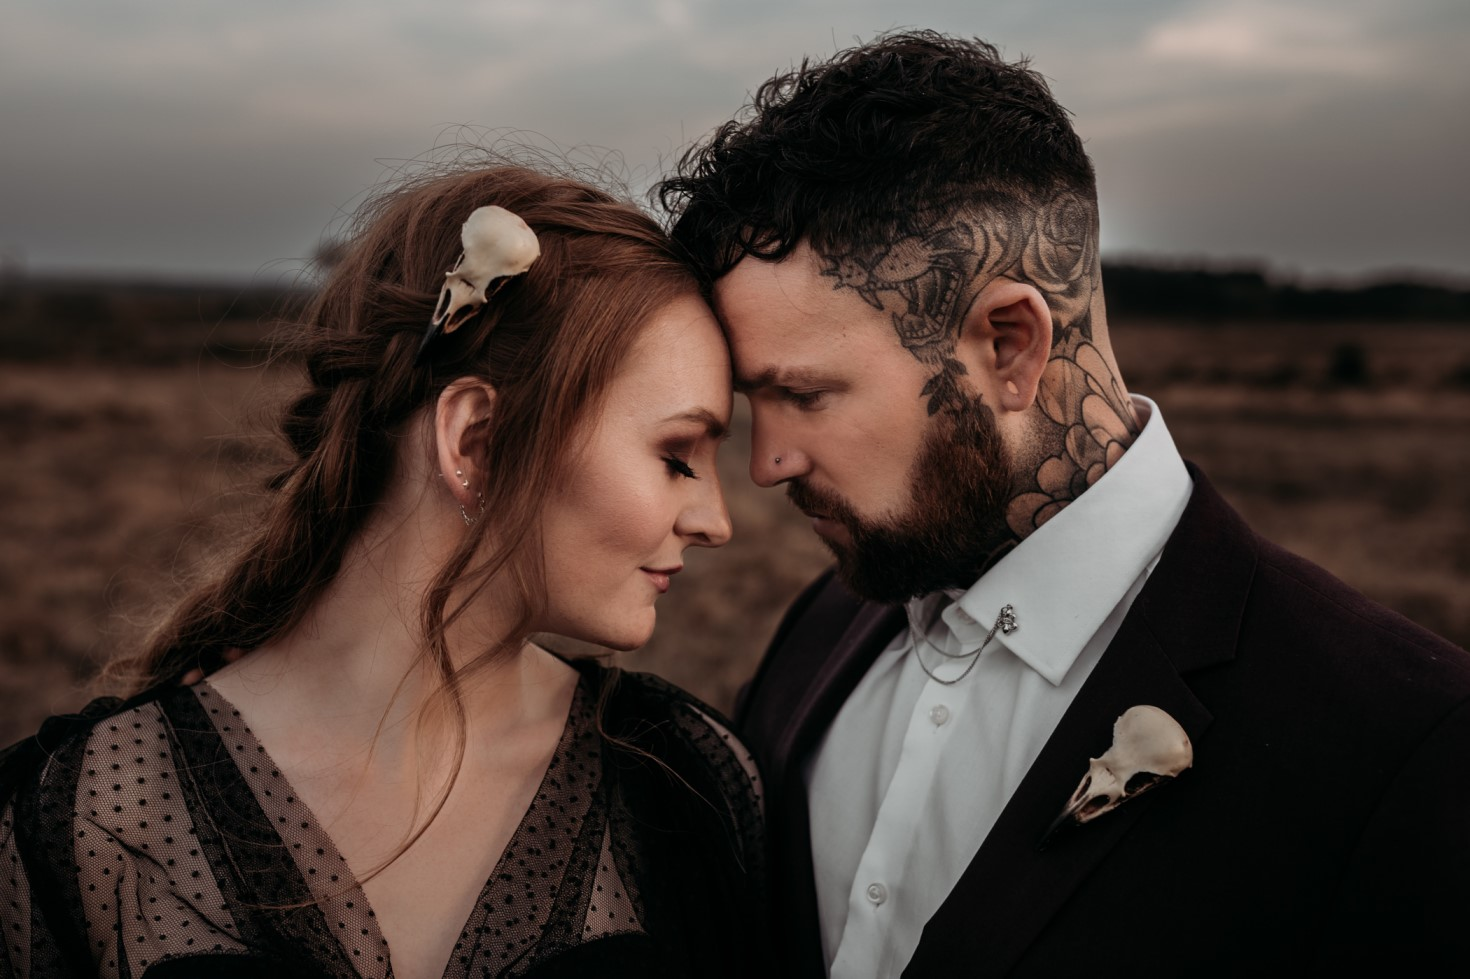 Finn And The Fox Photography-Moody Elopement Wedding- Unconventional Wedding-Edgy Wedding- Unique Wedding - Gothic wedding